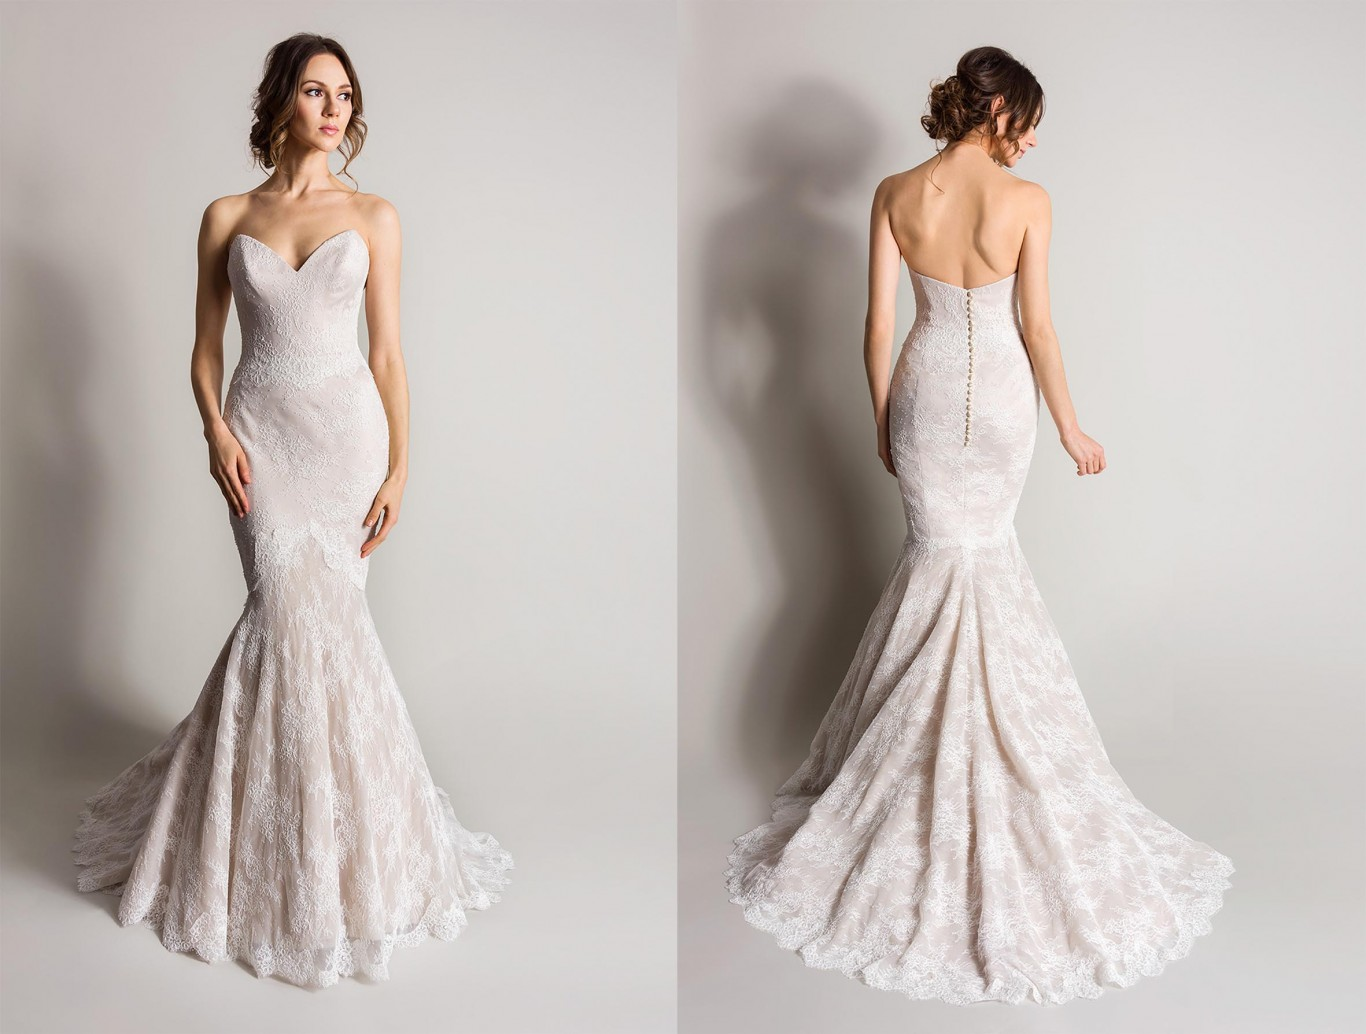 Champagne wedding dresses in depth article by suzanne for Wedding dresses for bridesmaid